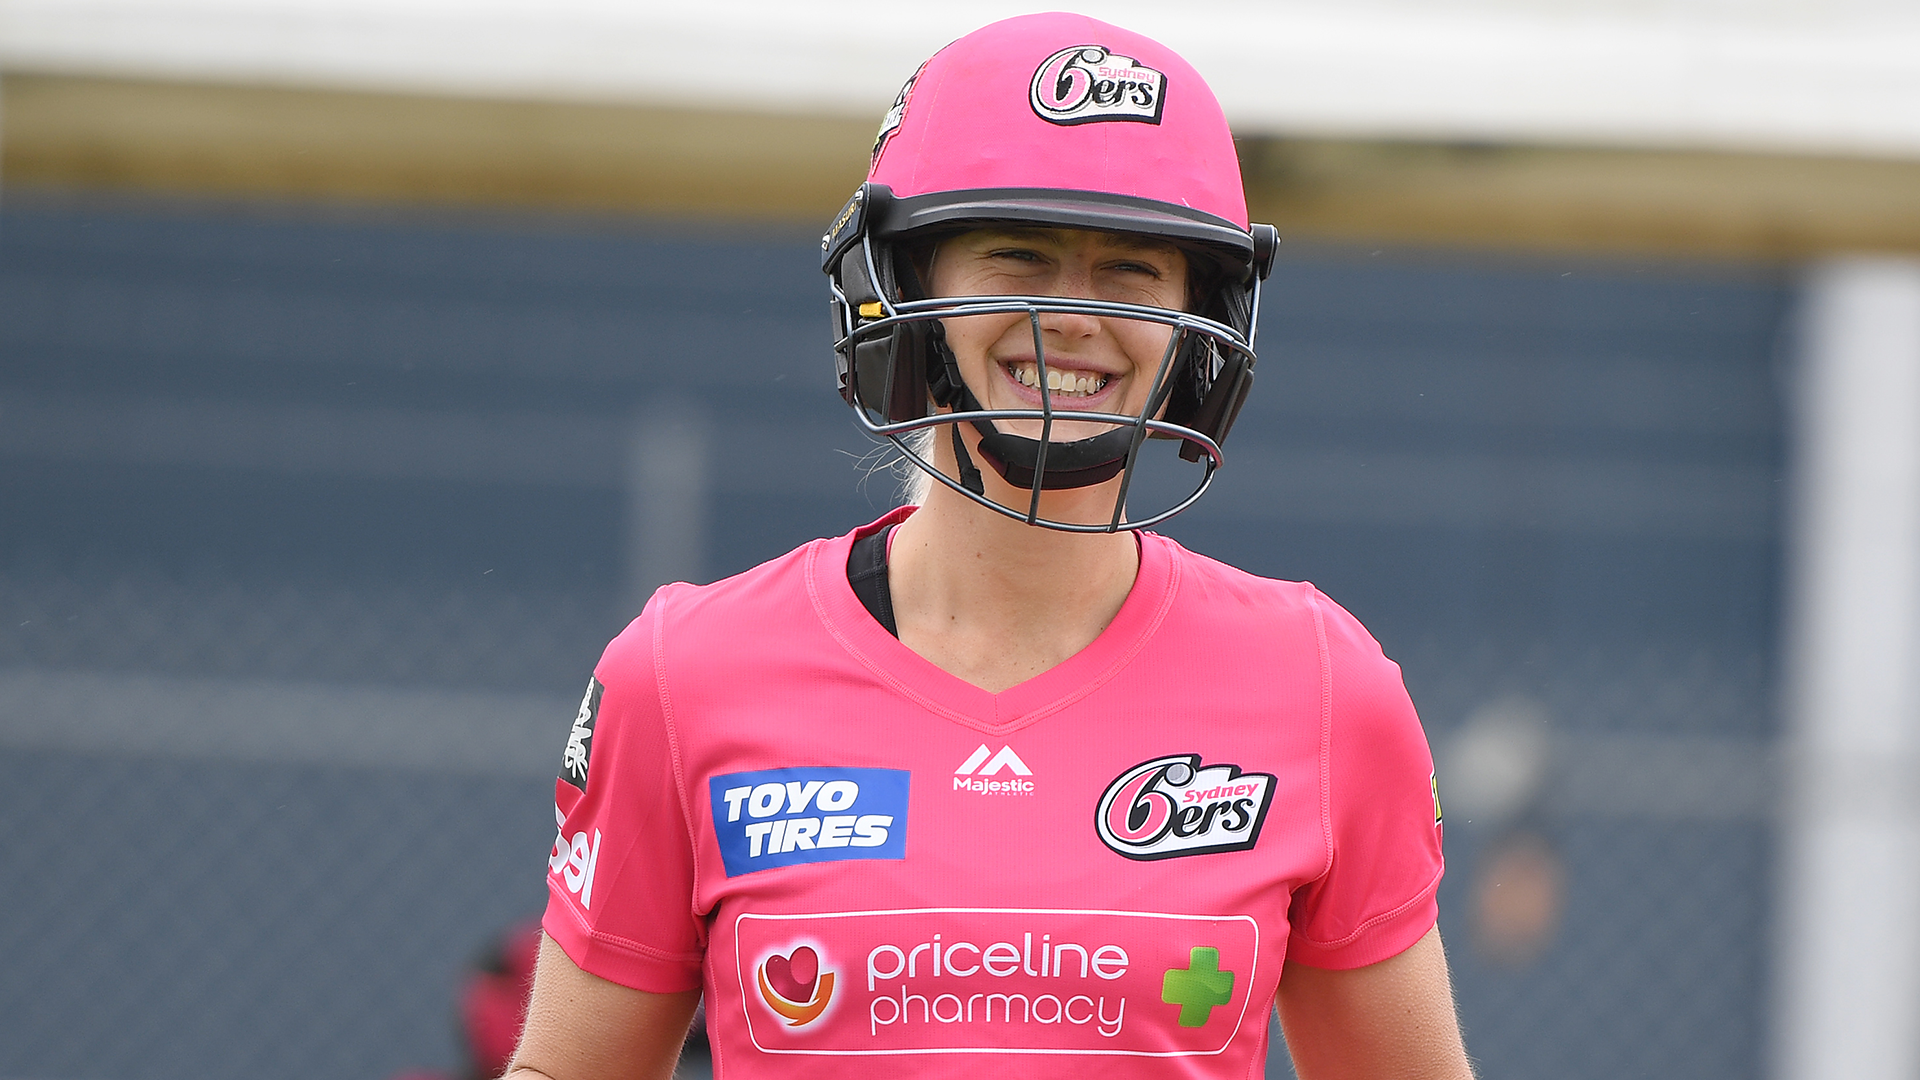 WBBL05: Ellyse Perry smashes windscreen in another unbeaten innings